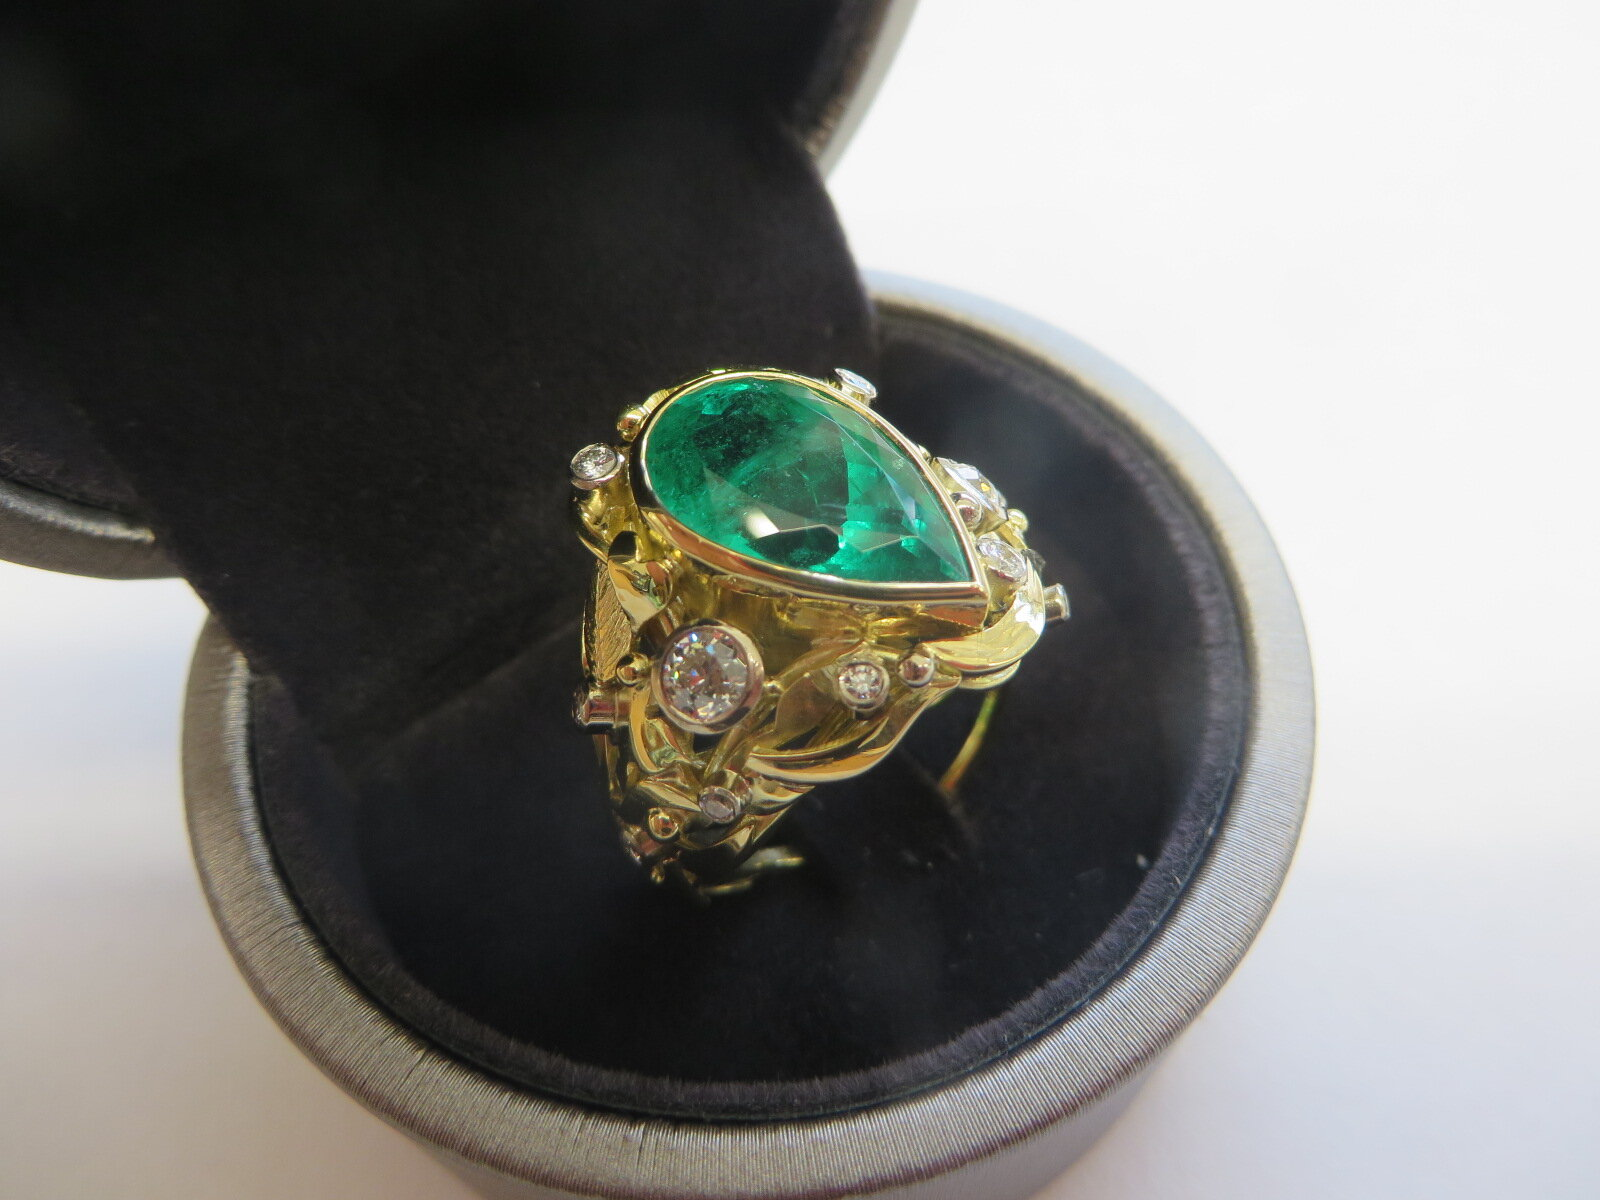 Another view of the completed Commission hand made in 18ct Gold,  design by Quo Vadis Jewellery.